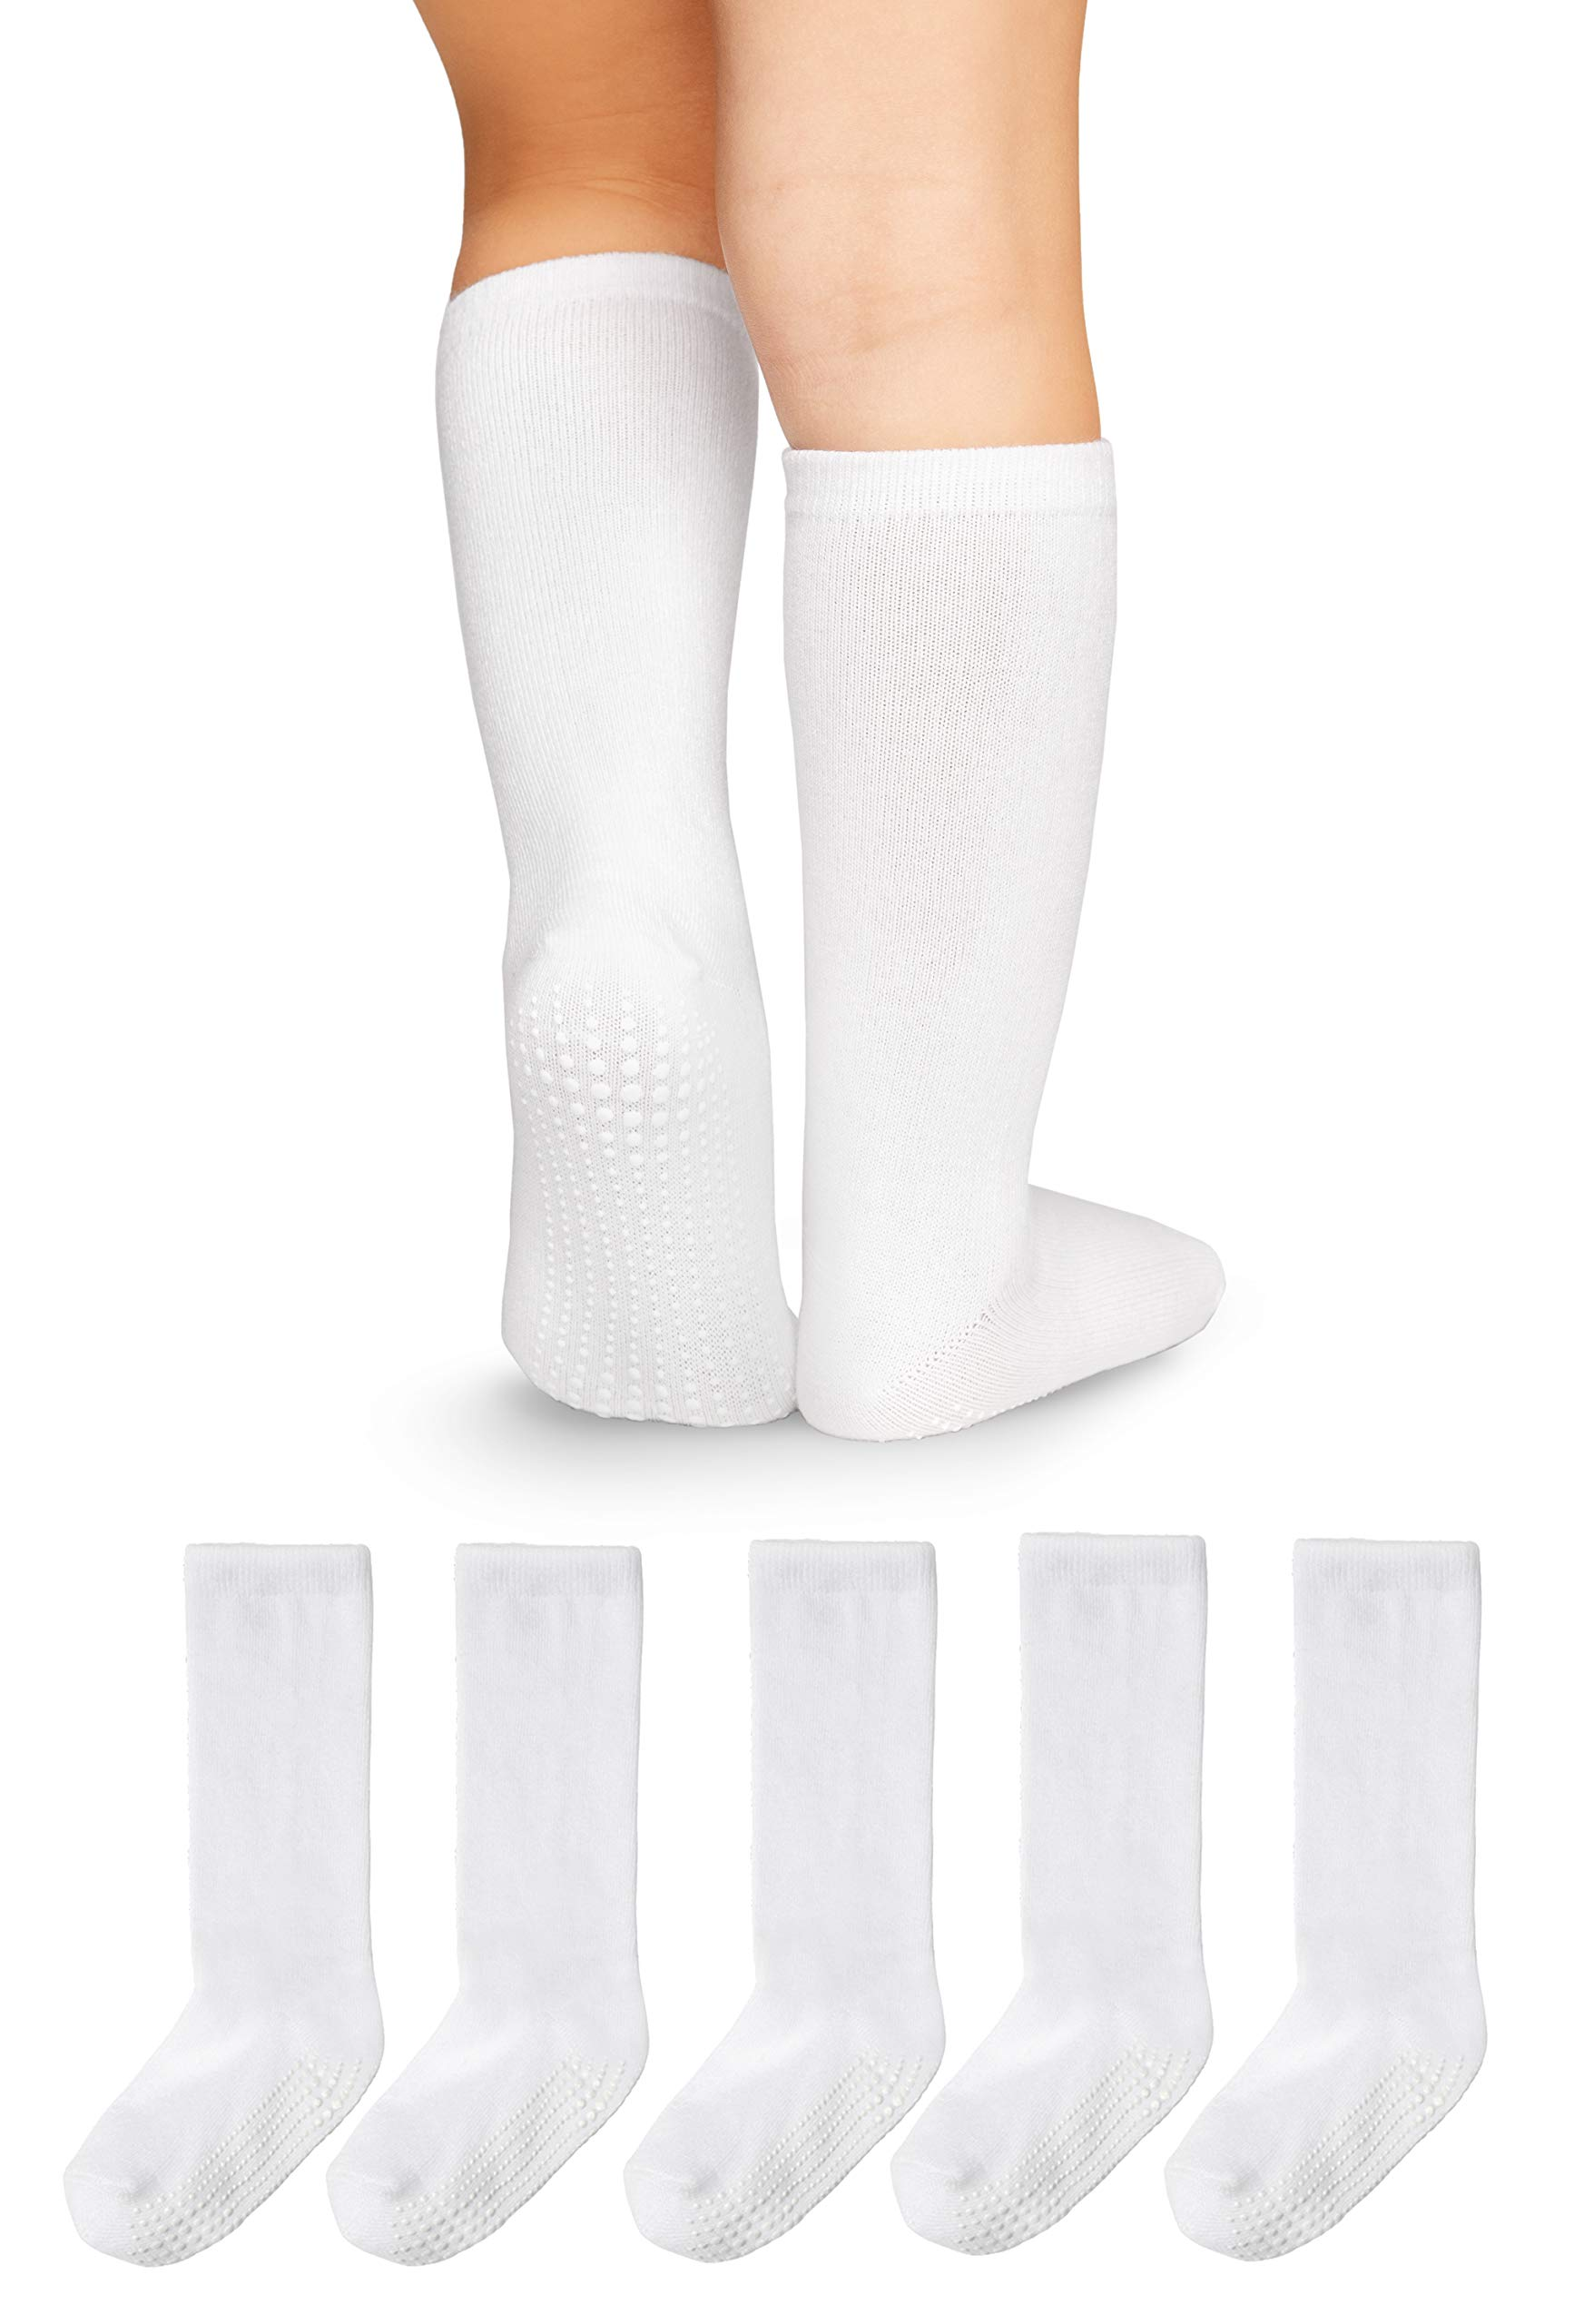 LA Active Knee High Grip Socks - 5 Pairs - Baby Toddler Non Slip/Skid Cotton (White, 12-36 Months) by LA Active